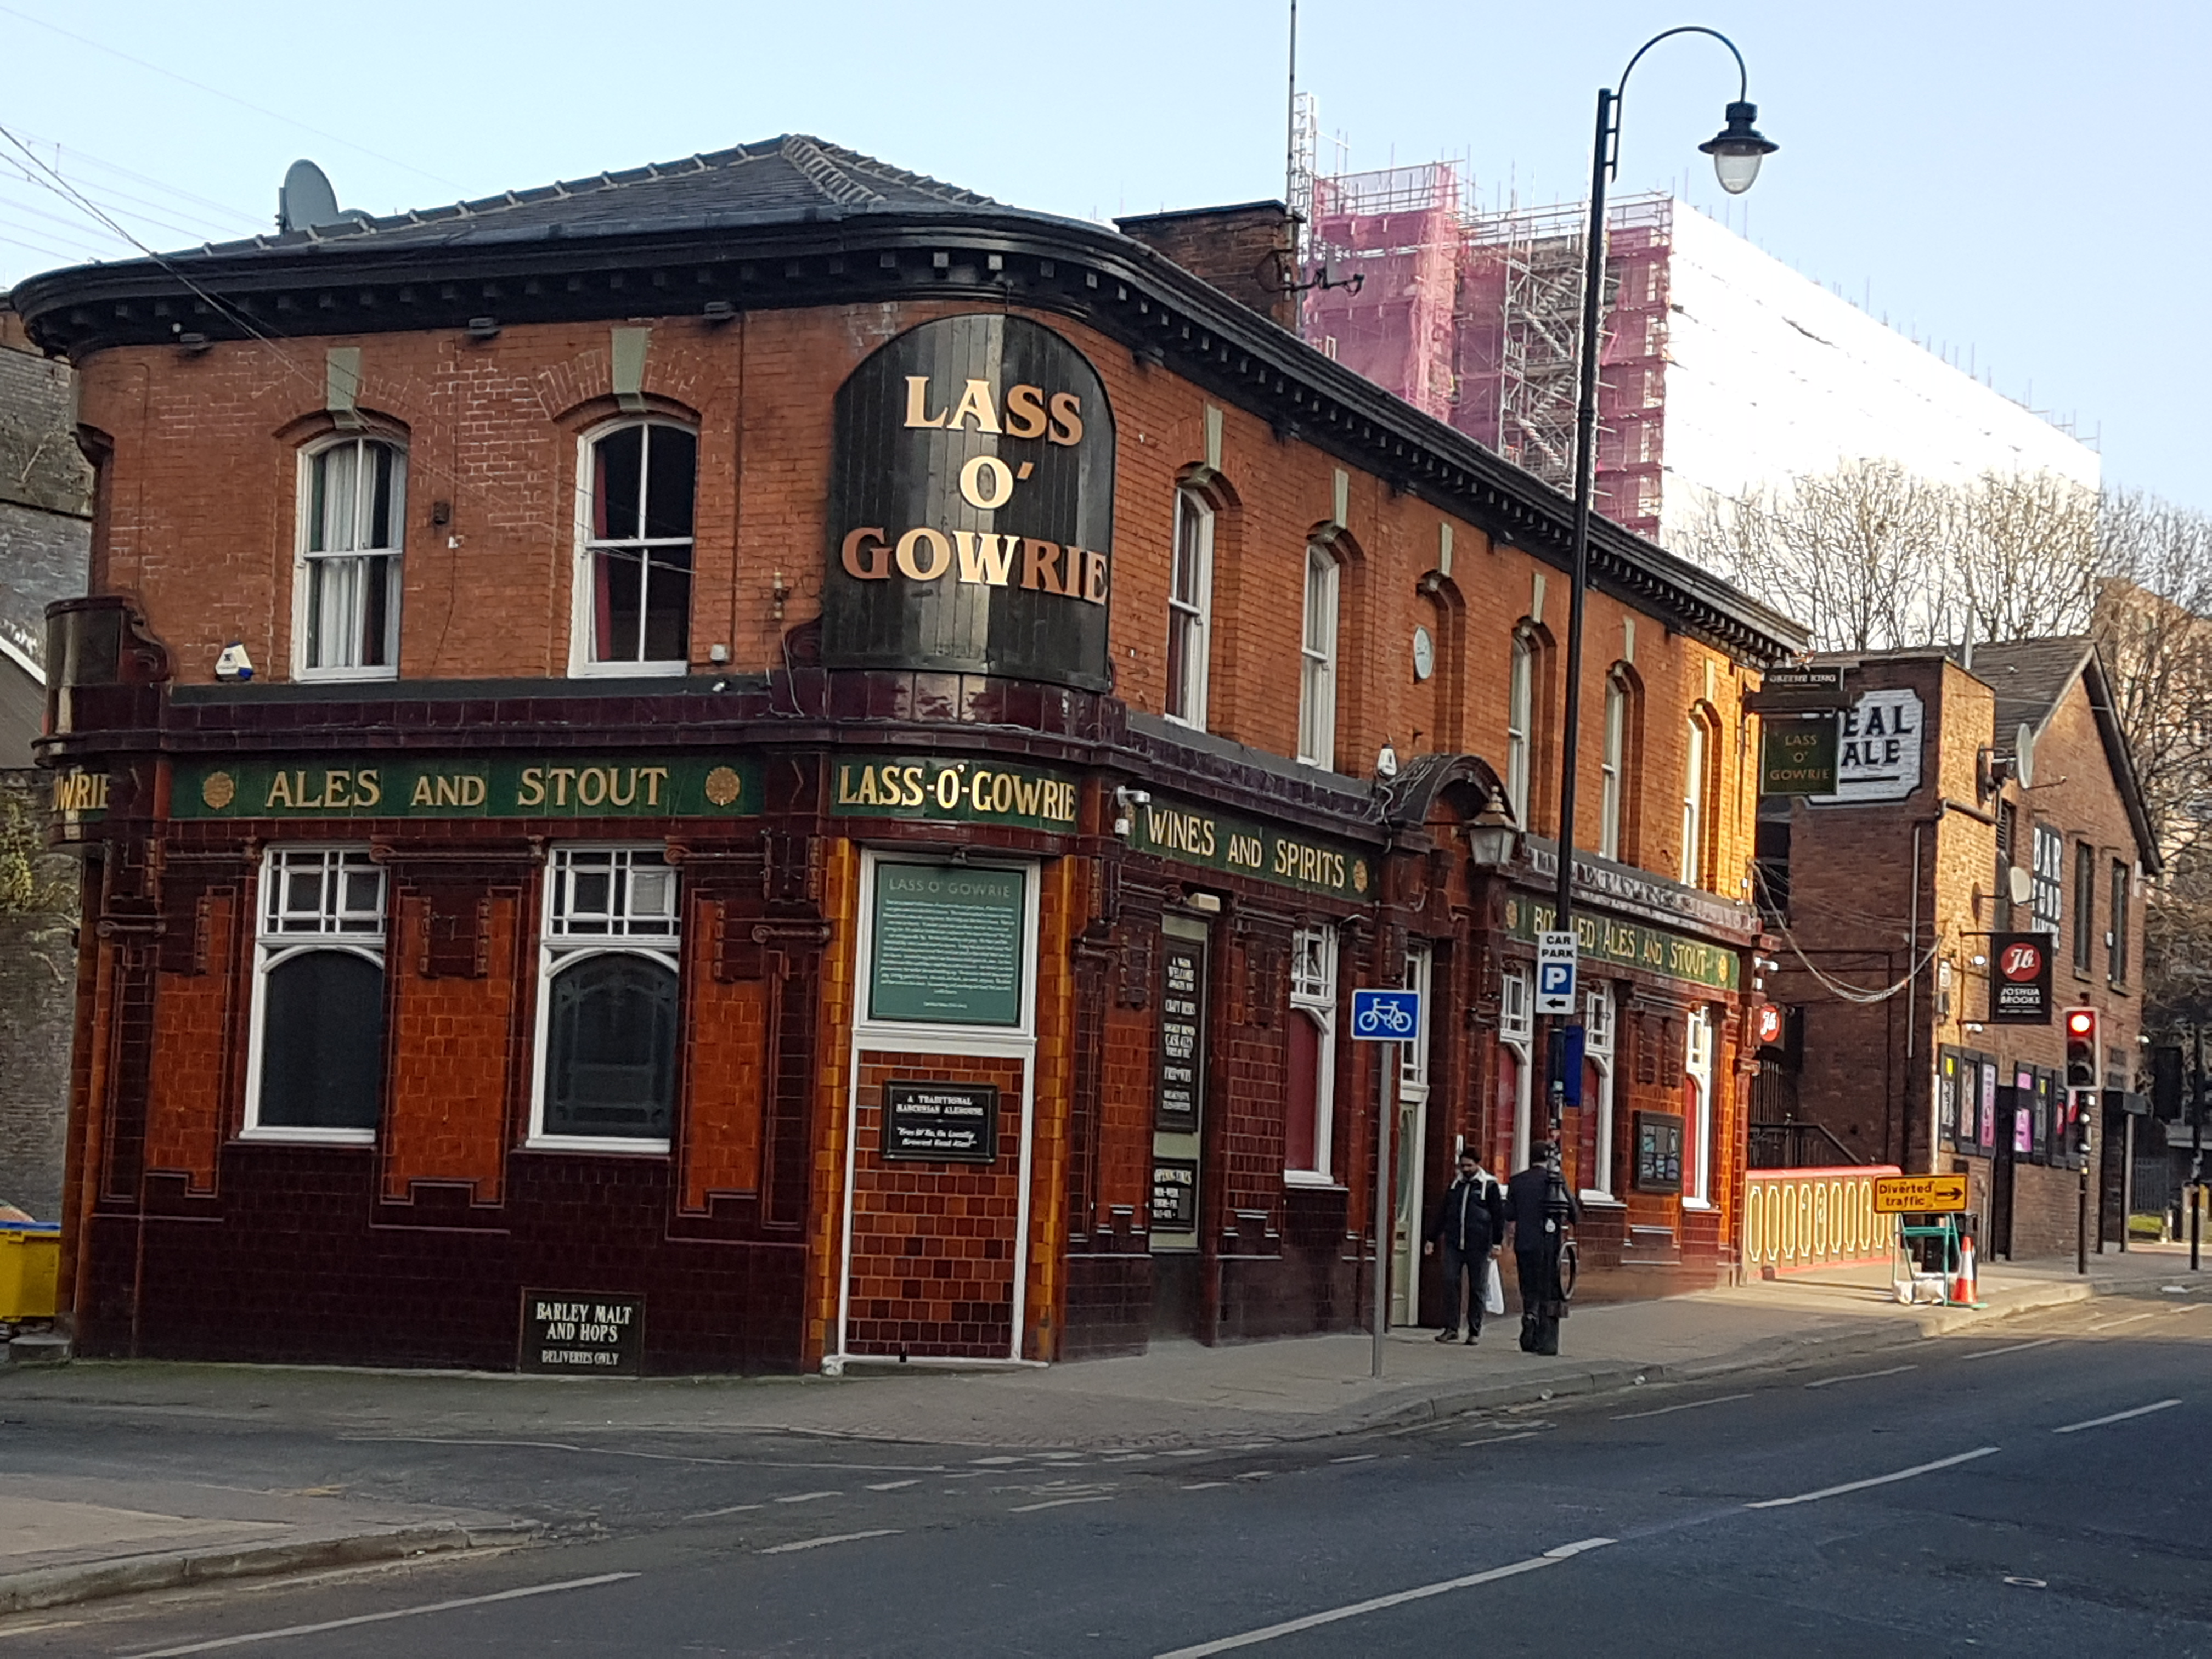 lass-o-gowrie-1